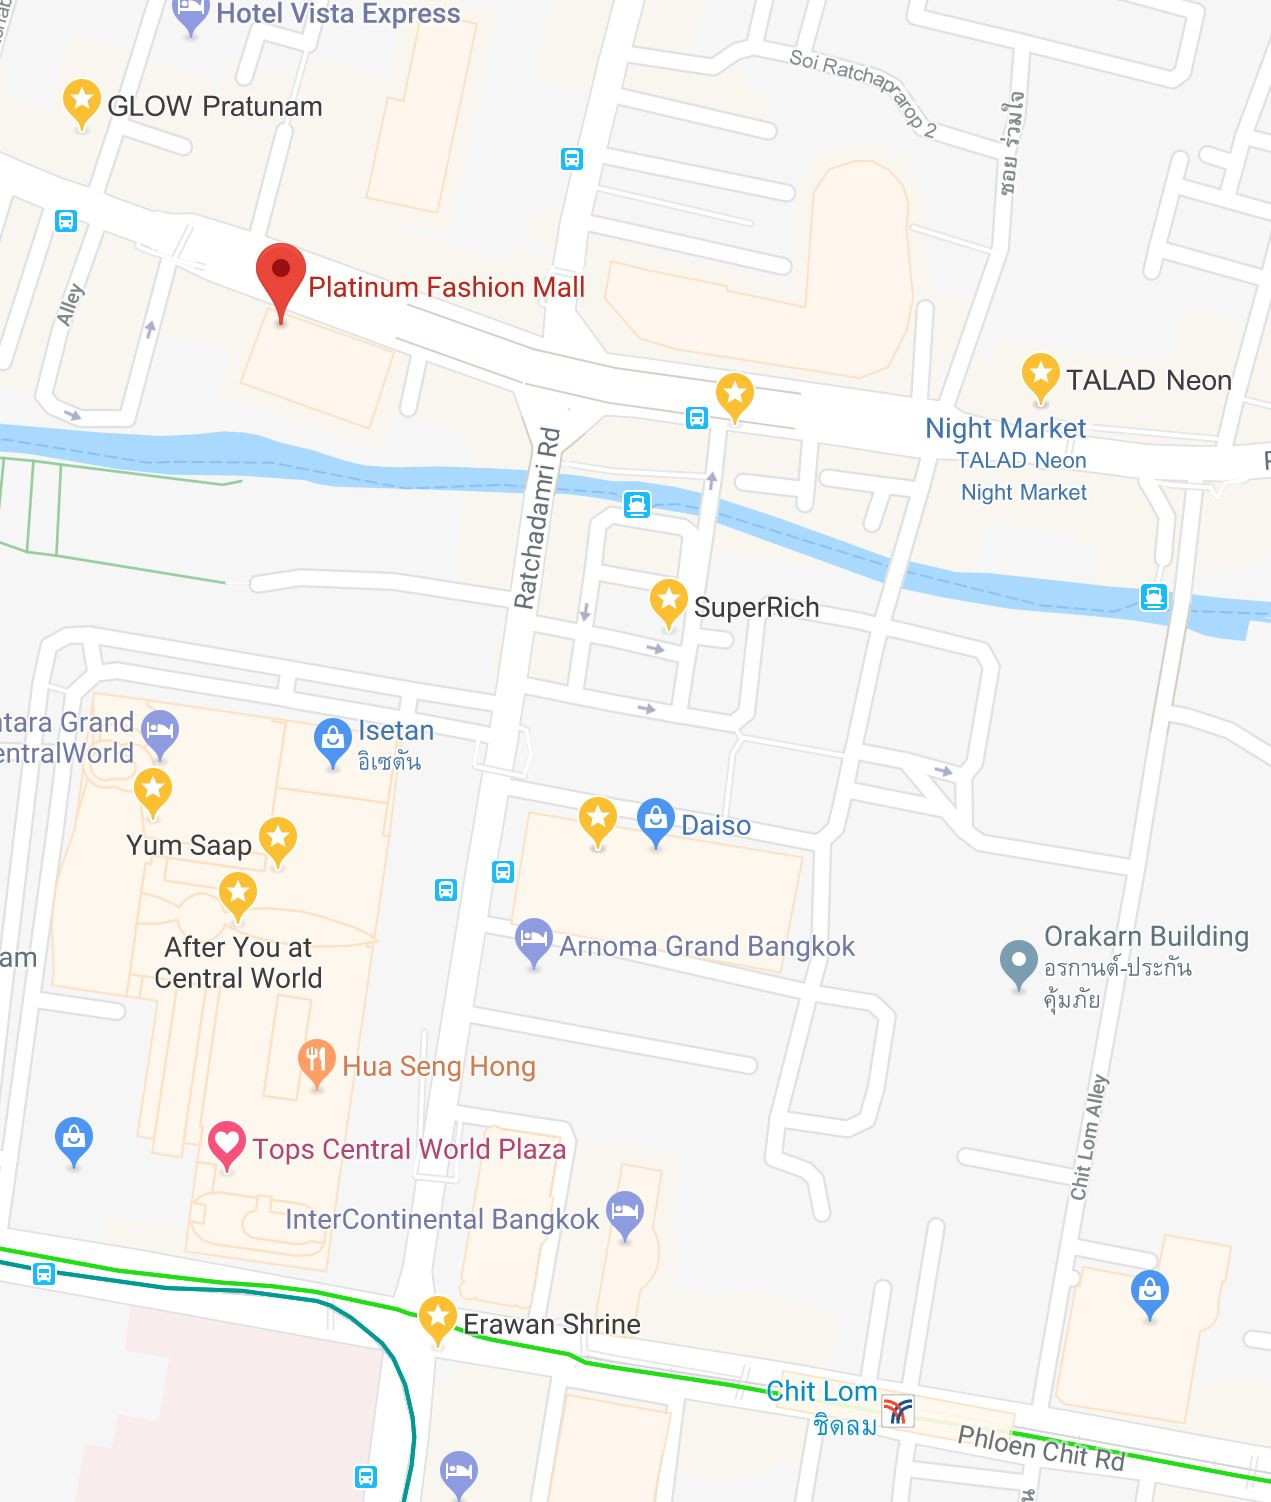 Overcome life bangkok d2 pratunam area and talad neon night market chit lom bts surrounding area pic source google map gumiabroncs Image collections